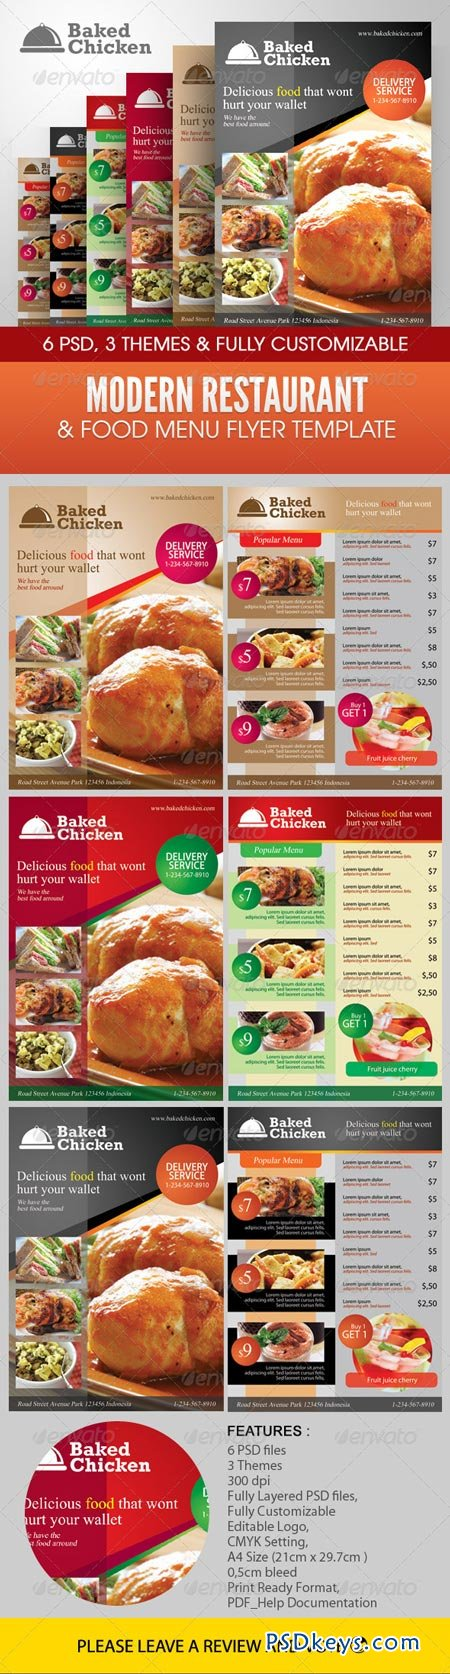 Modern Restaurant Food Menu Flyer Template   Free Download